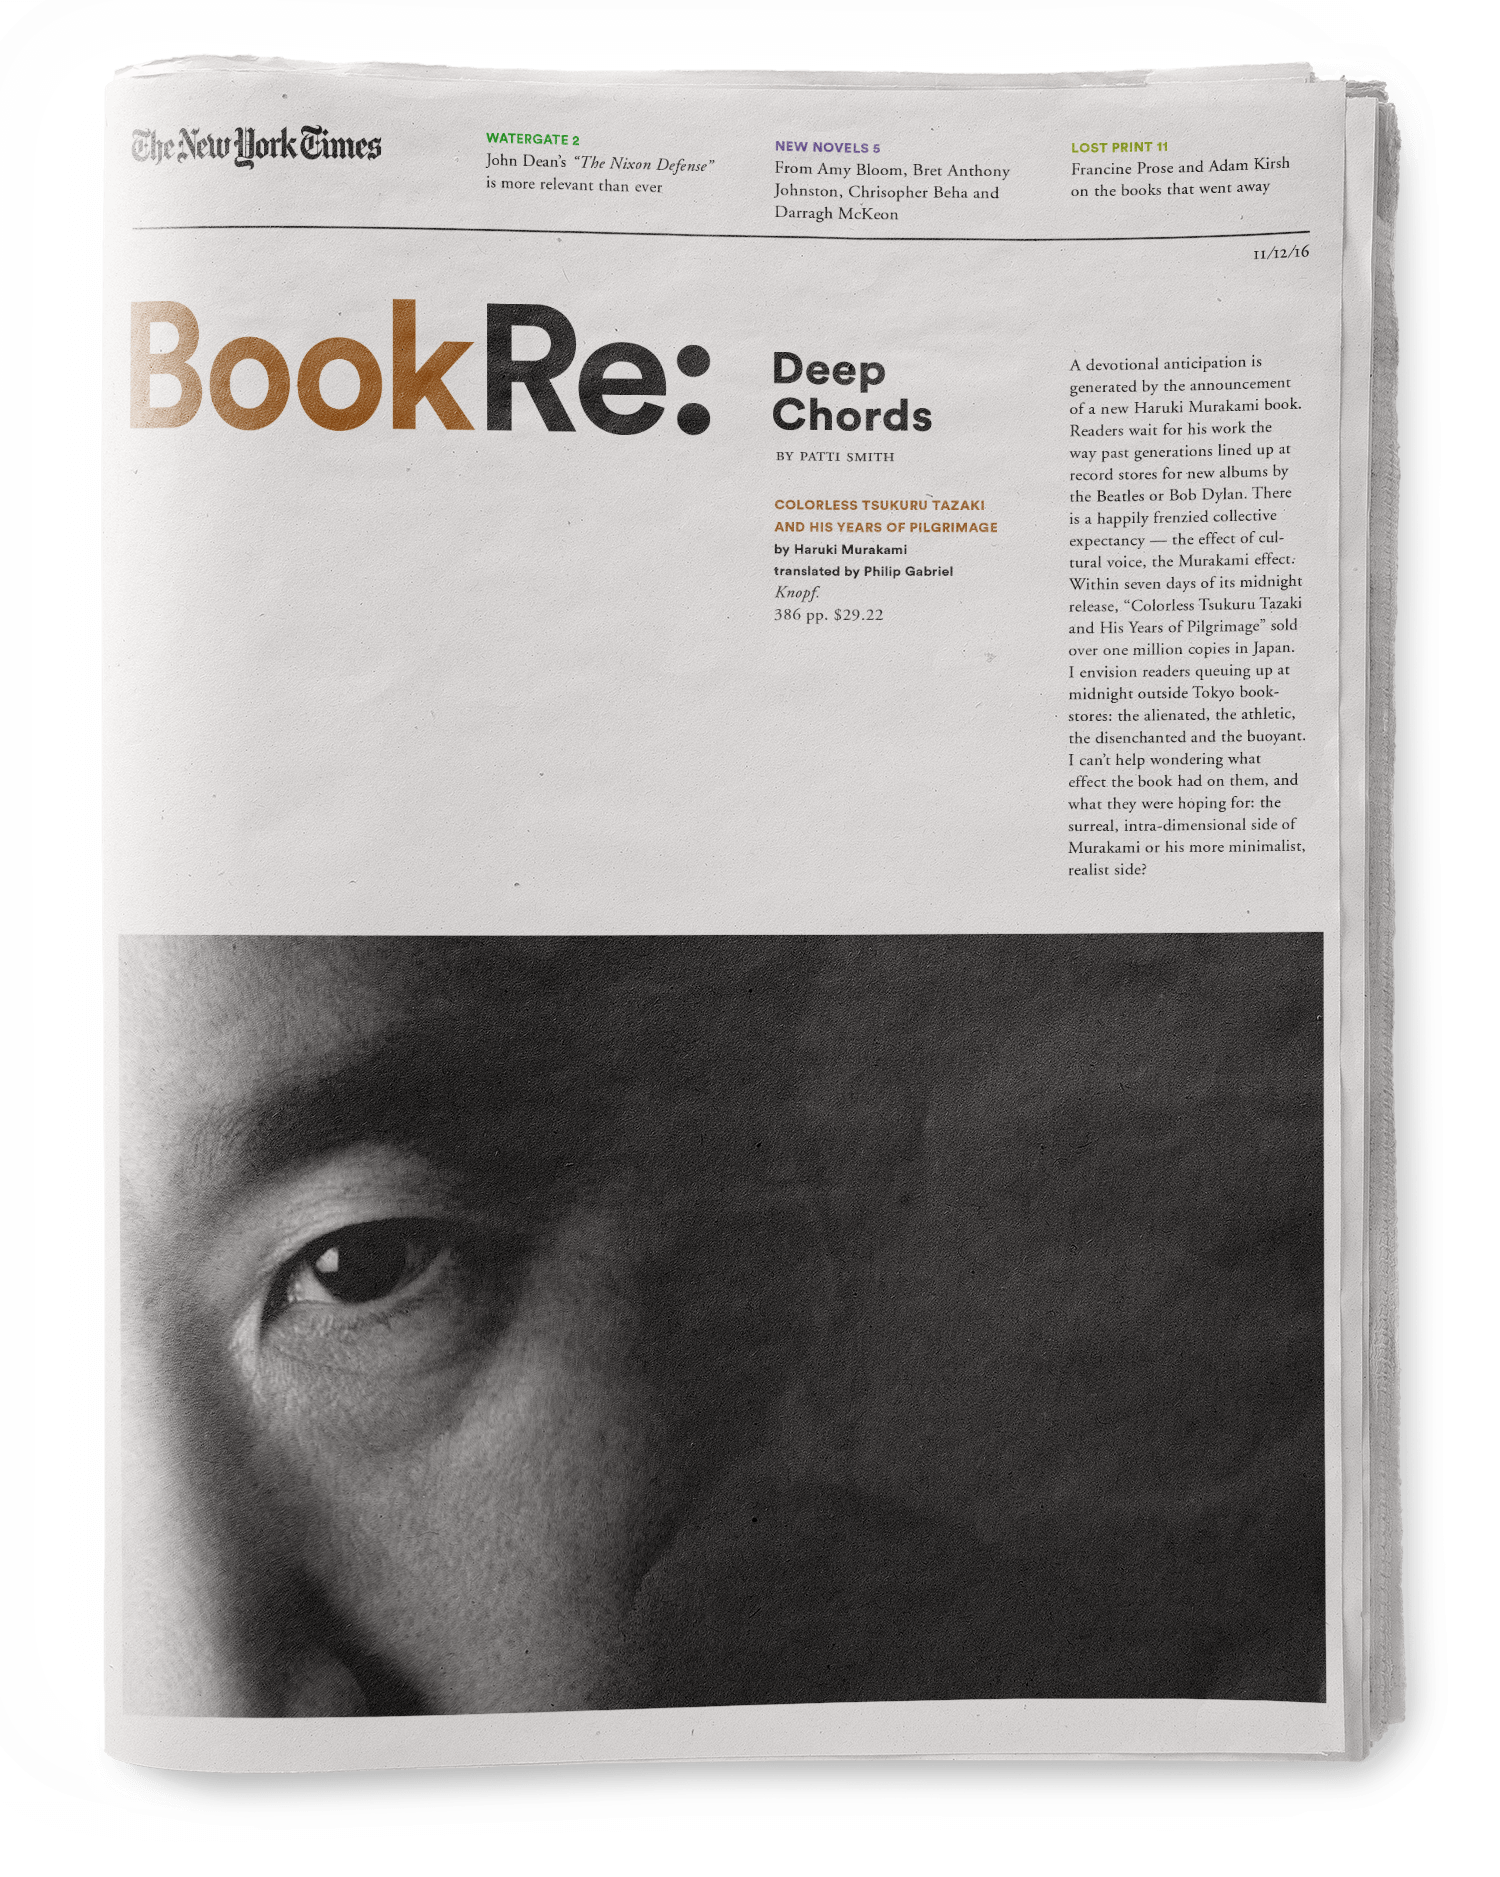 axel_lindmarker_new_york_times_book_review_3